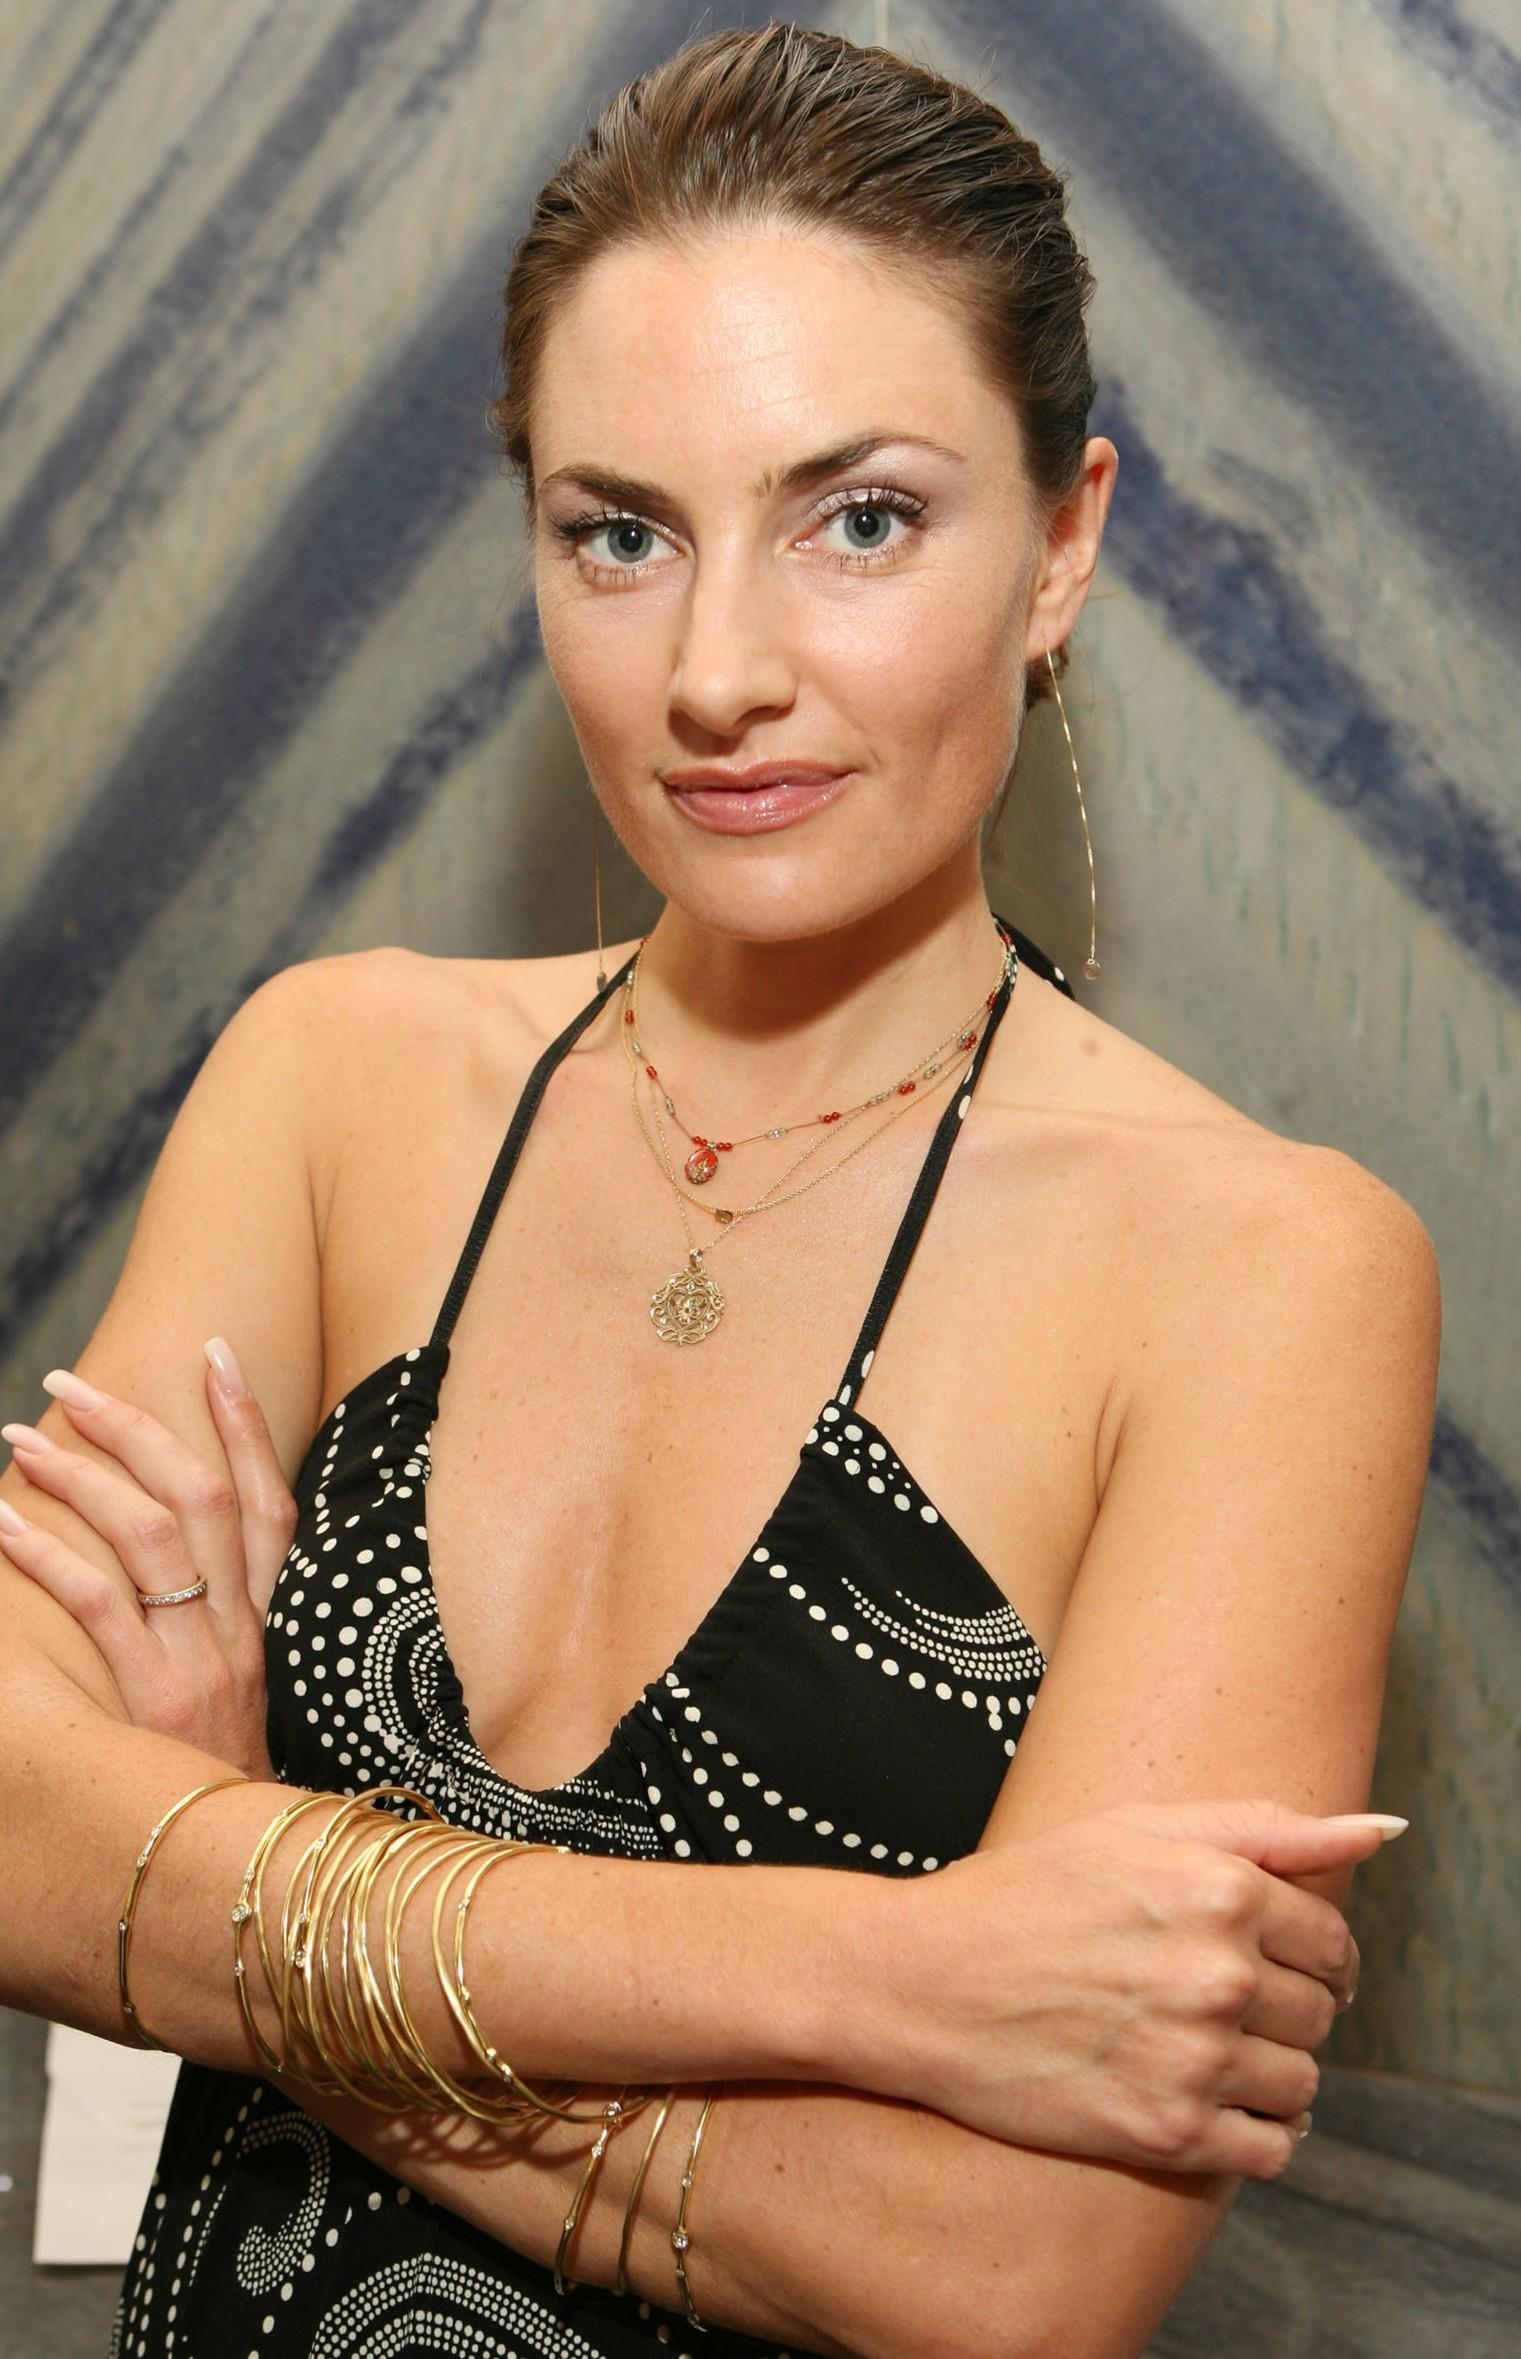 Amick Madchen Nude mädchen amick nude, naked - pics and videos - imperiodefamosas